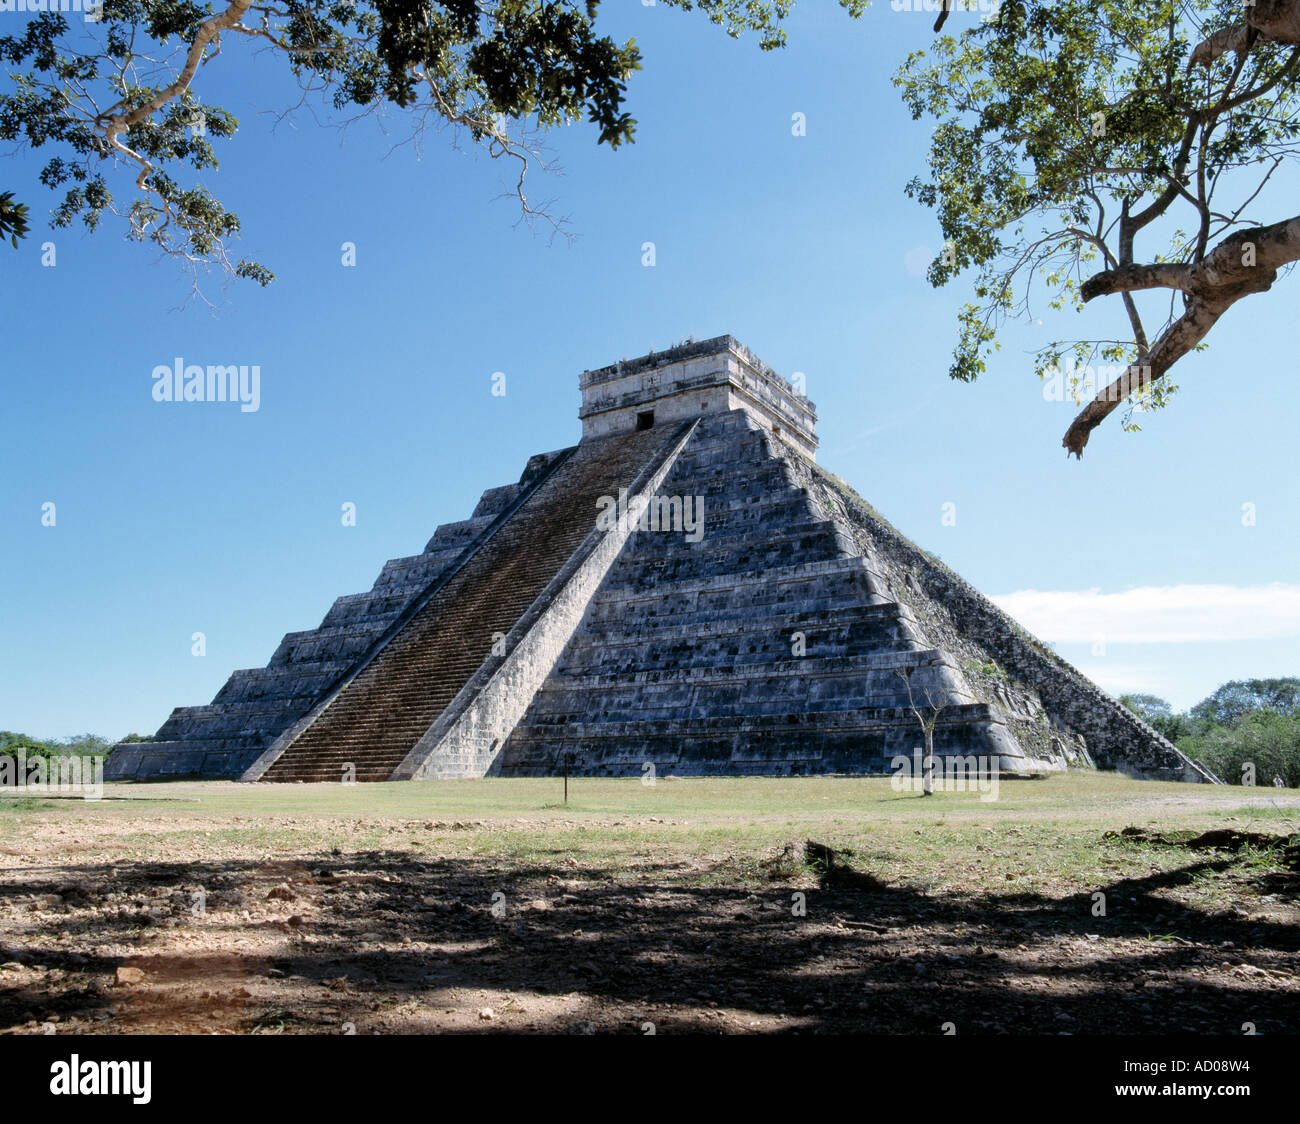 mayan pyramid monument sits in the landscape of yucatan peninsula in mexico, - Stock Image